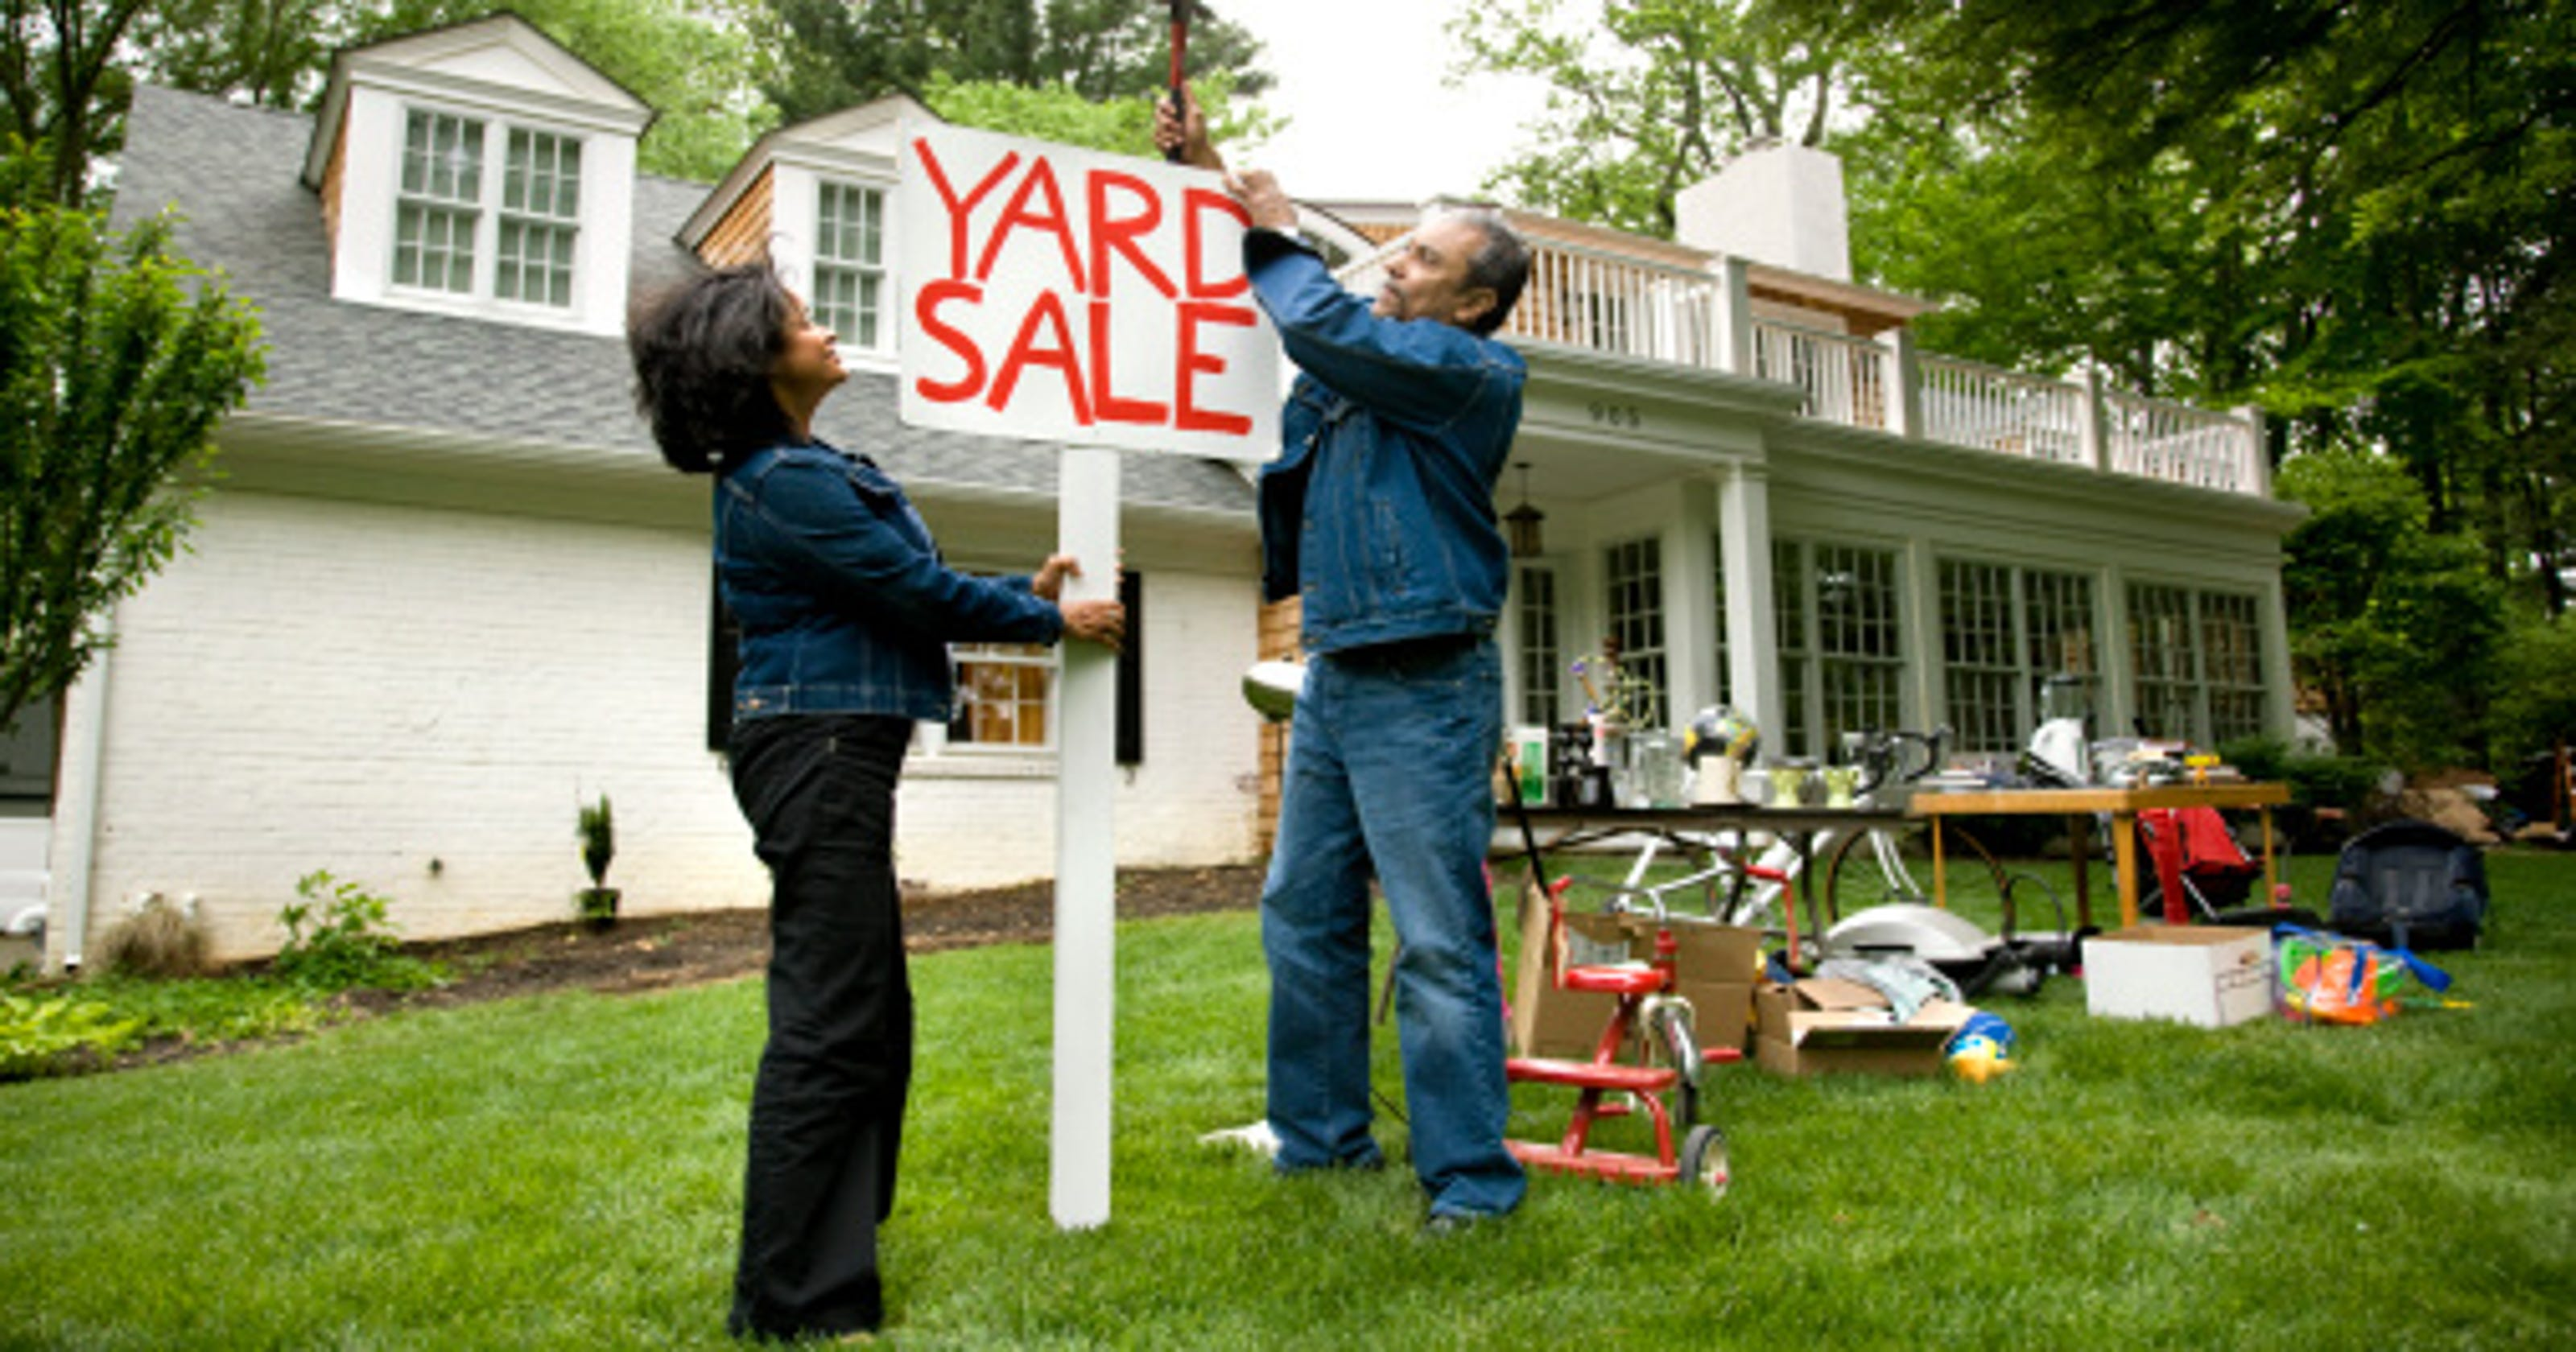 Things you should never buy at a yard sale